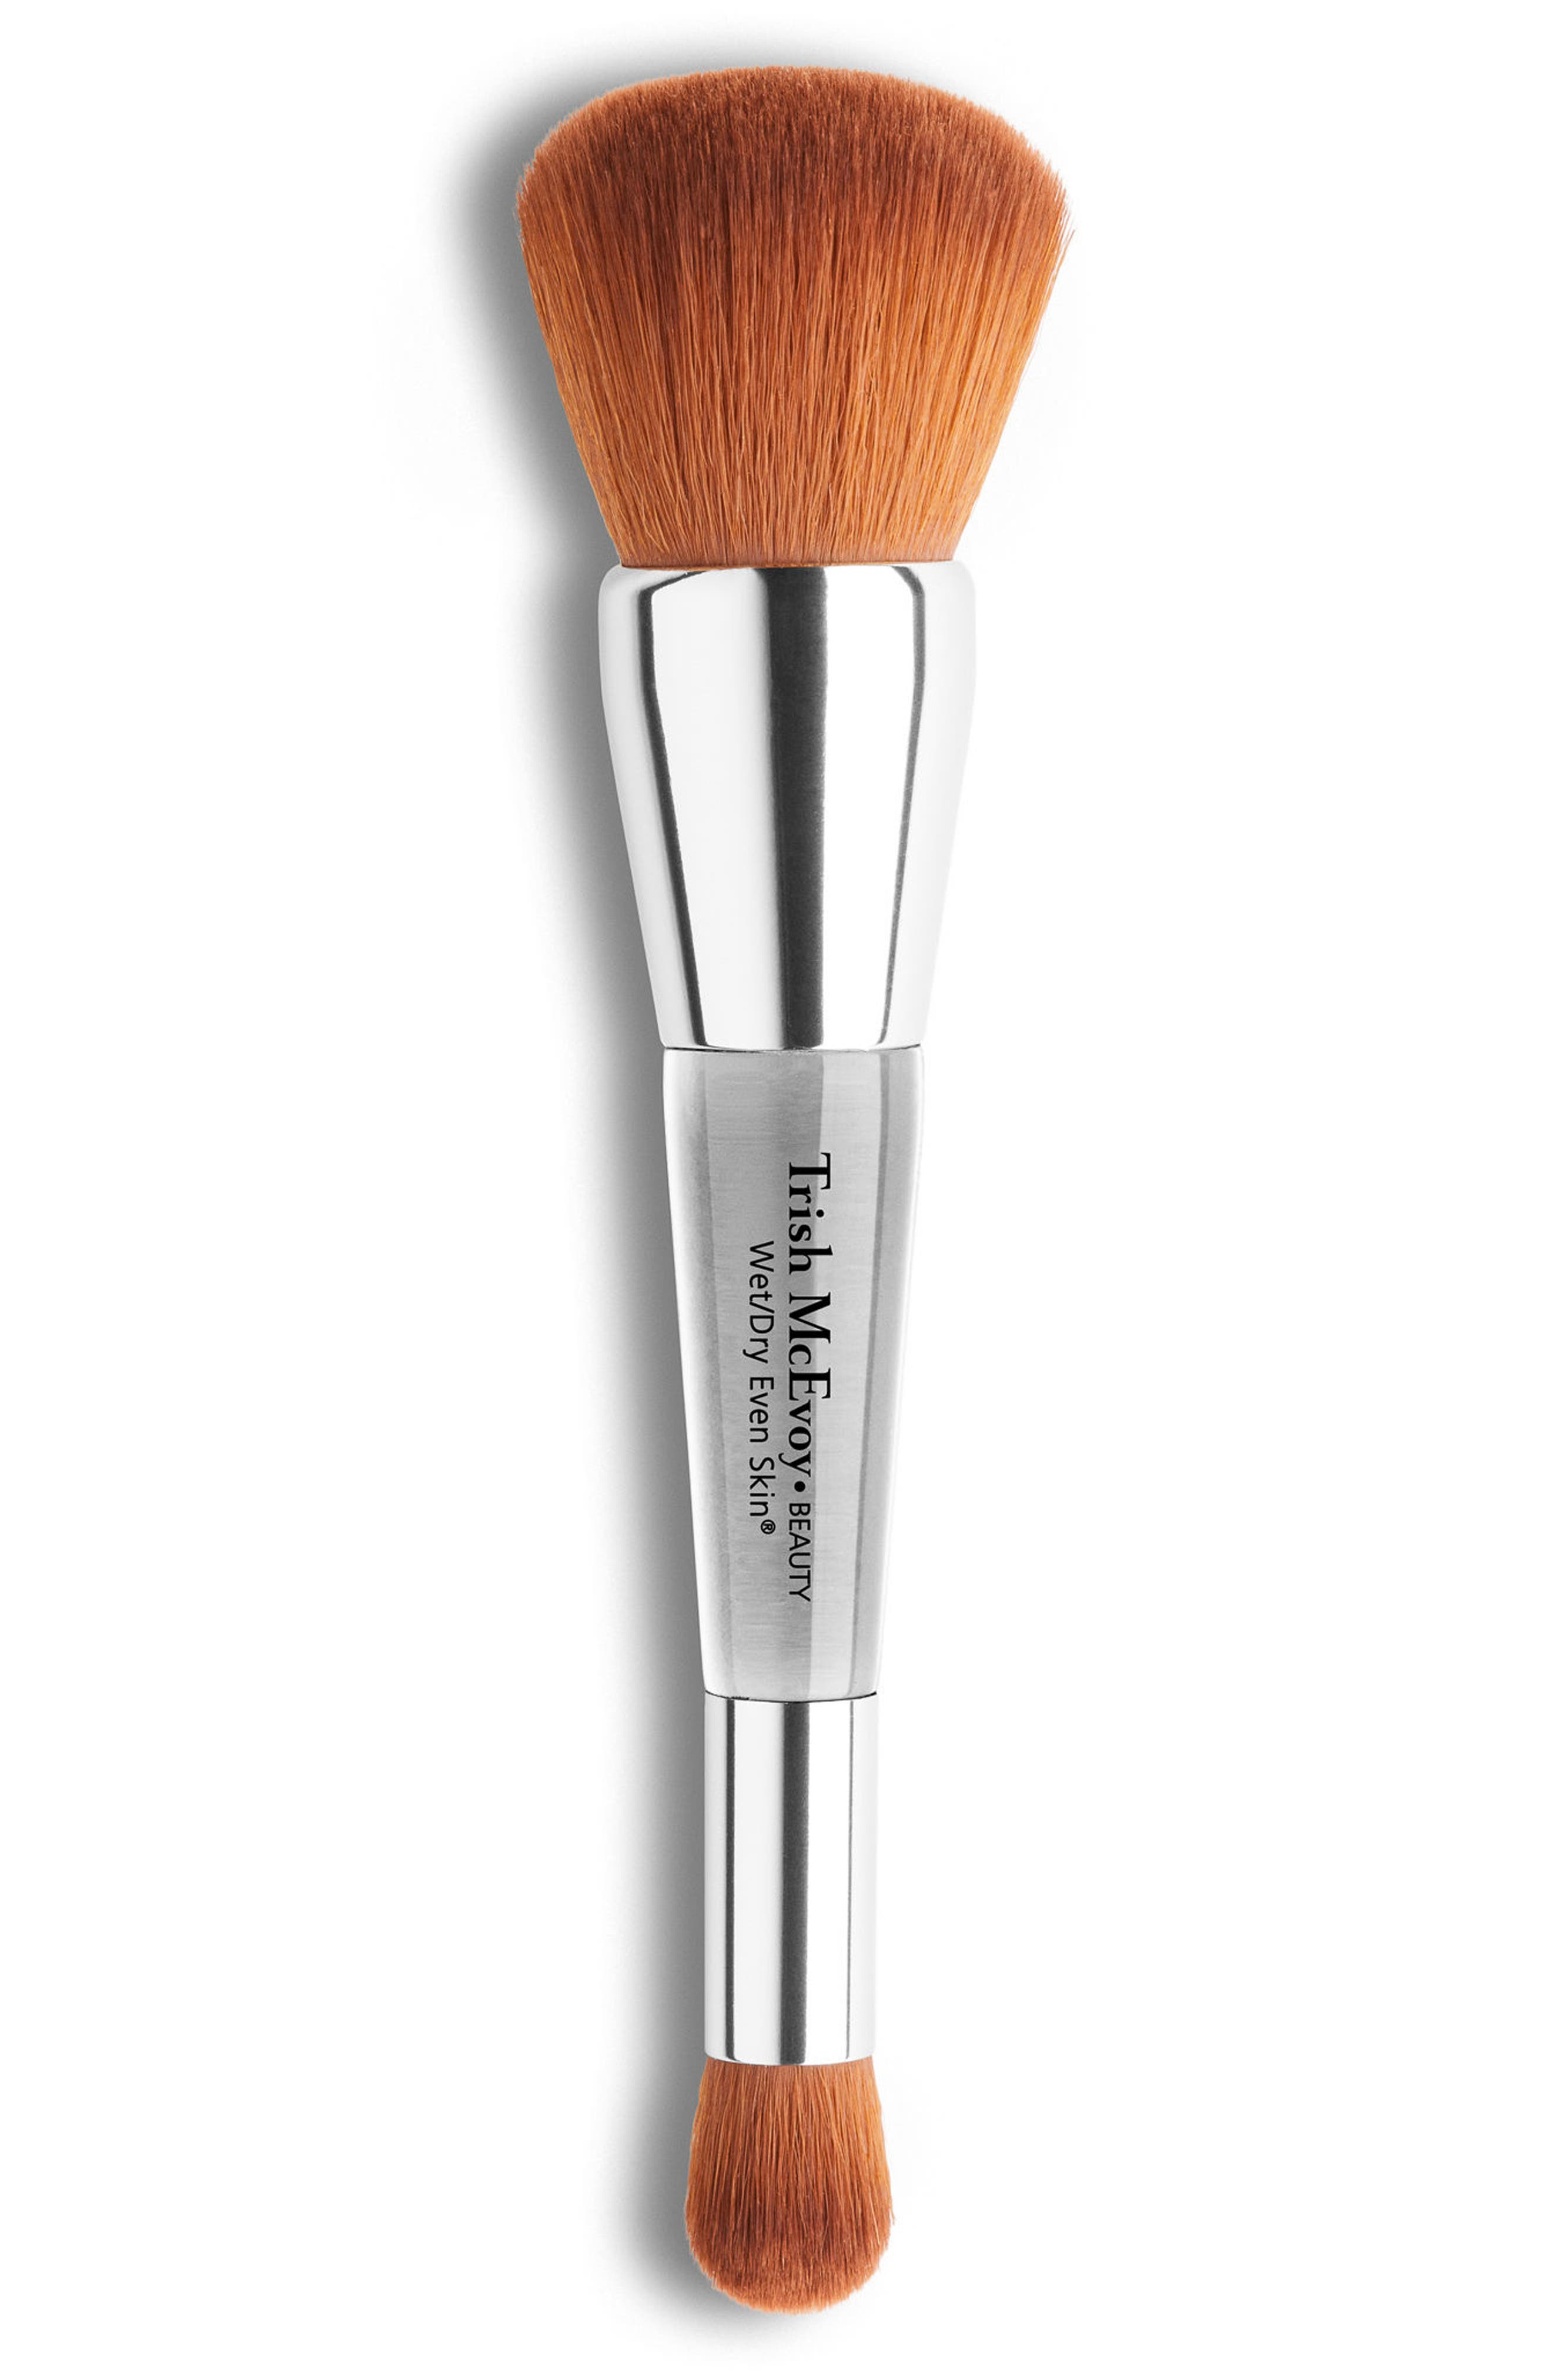 Trish McEvoy 'Wet/Dry Even Skin®' Brush